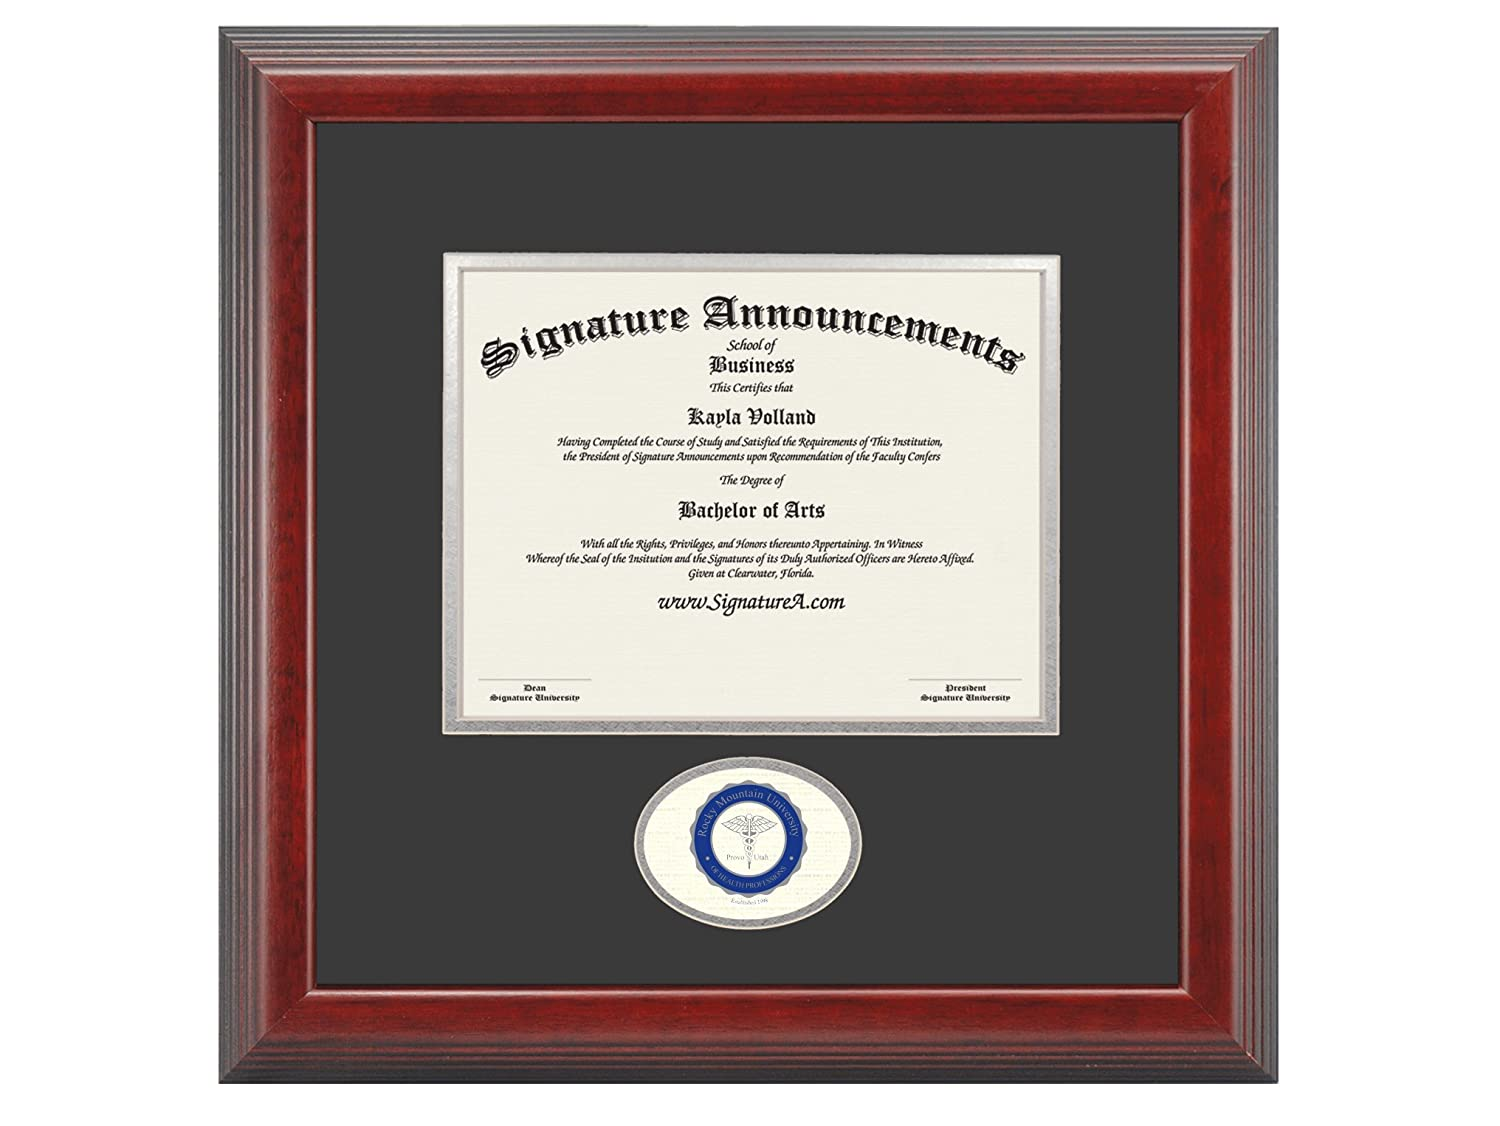 Signature AnnouncementsRocky-Mountain-University-of-Health-Professions Doctoral Sculpted Foil Seal Graduation Diploma Frame 16 x 16 Cherry